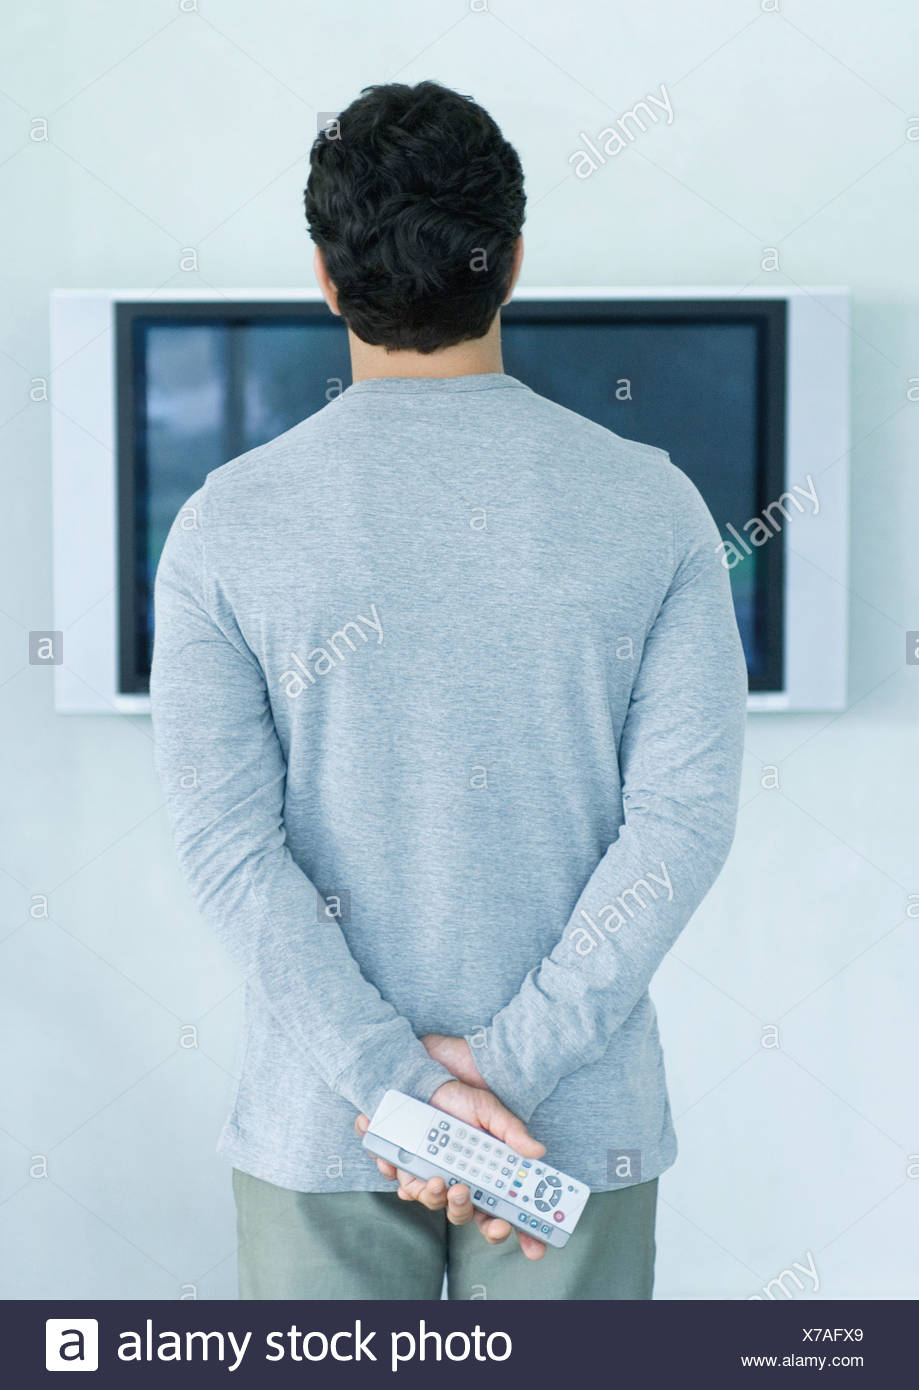 Man standing in front of widescreen TV, holding two remote controls, rear view - Stock Image